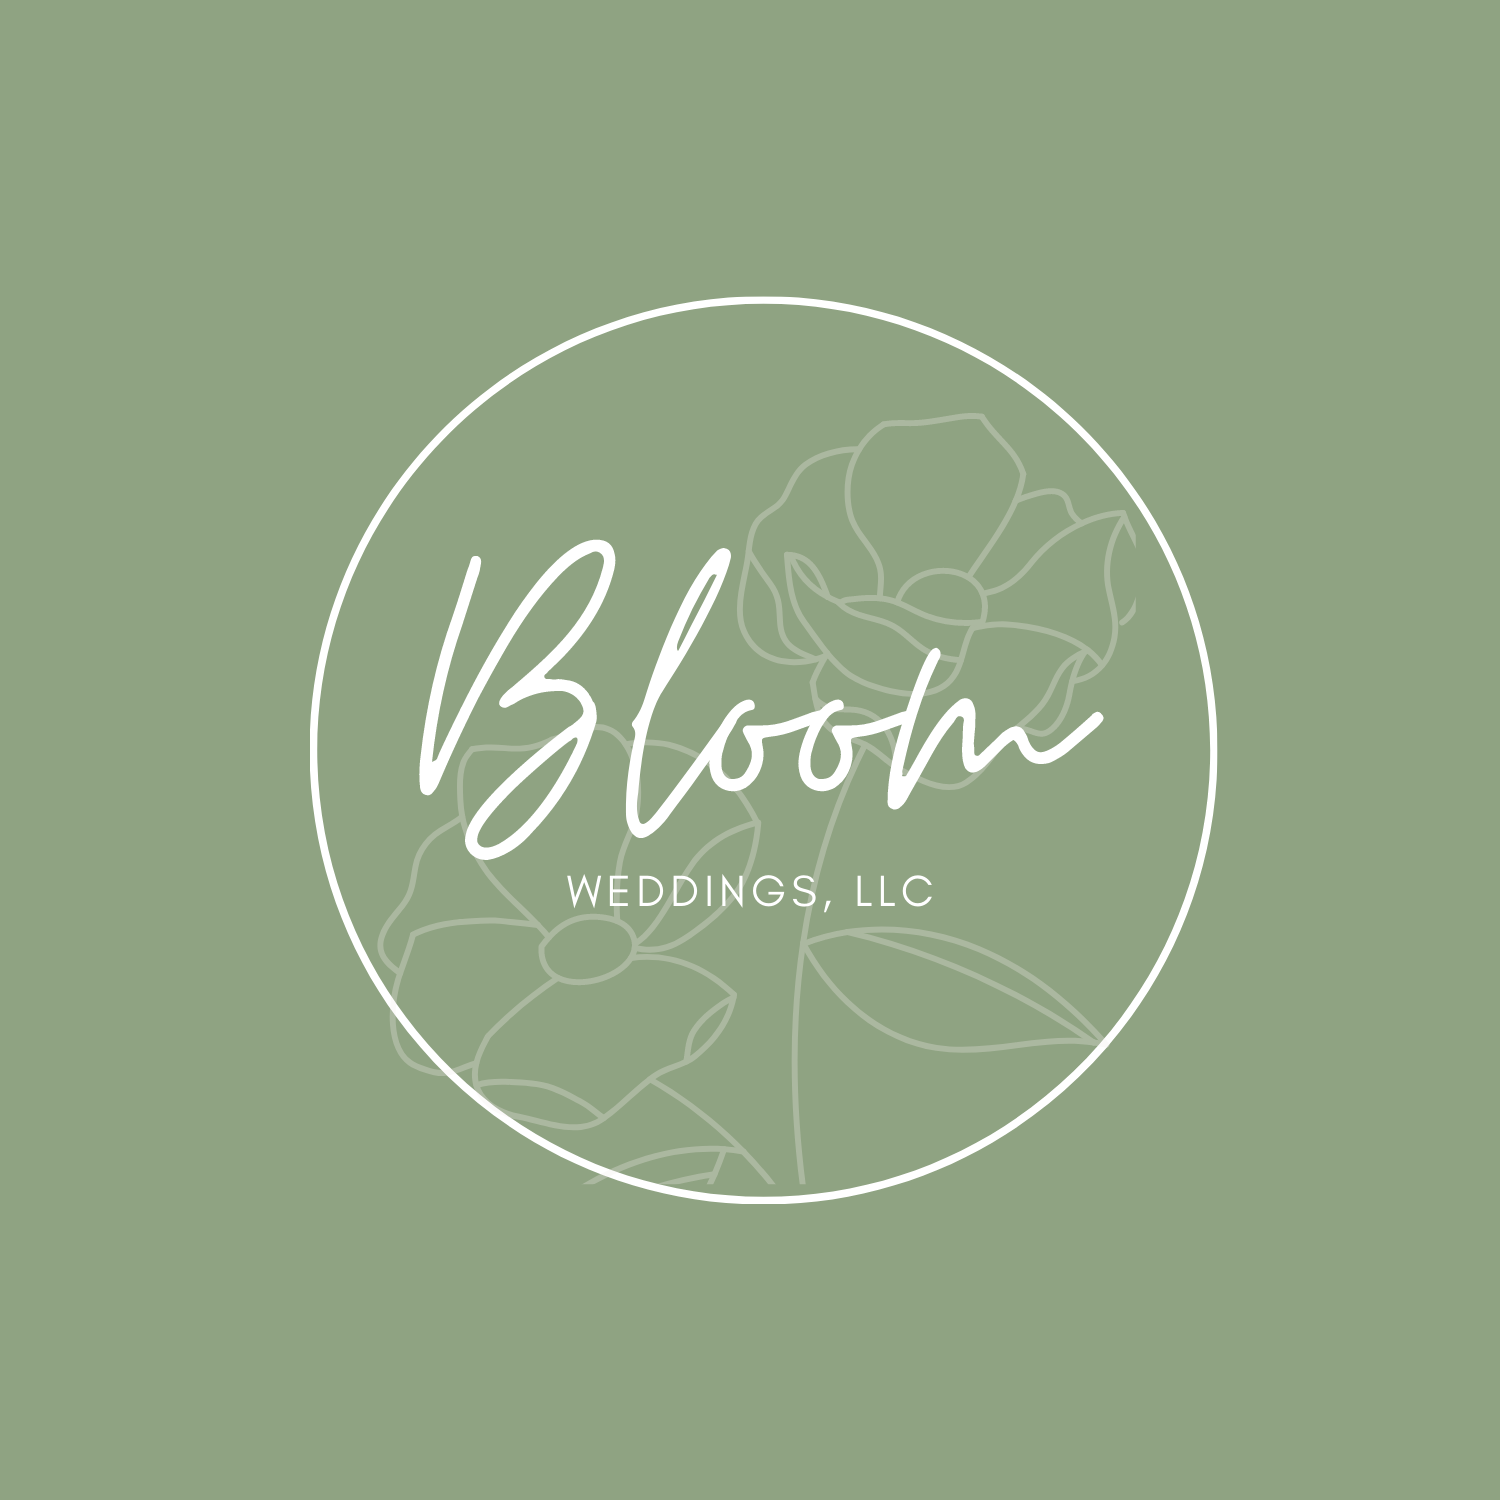 Bloom Weddings   Wedding Planner in Grand Junction, Colorado featured on WED West Slope - a directory for wedding vendors.